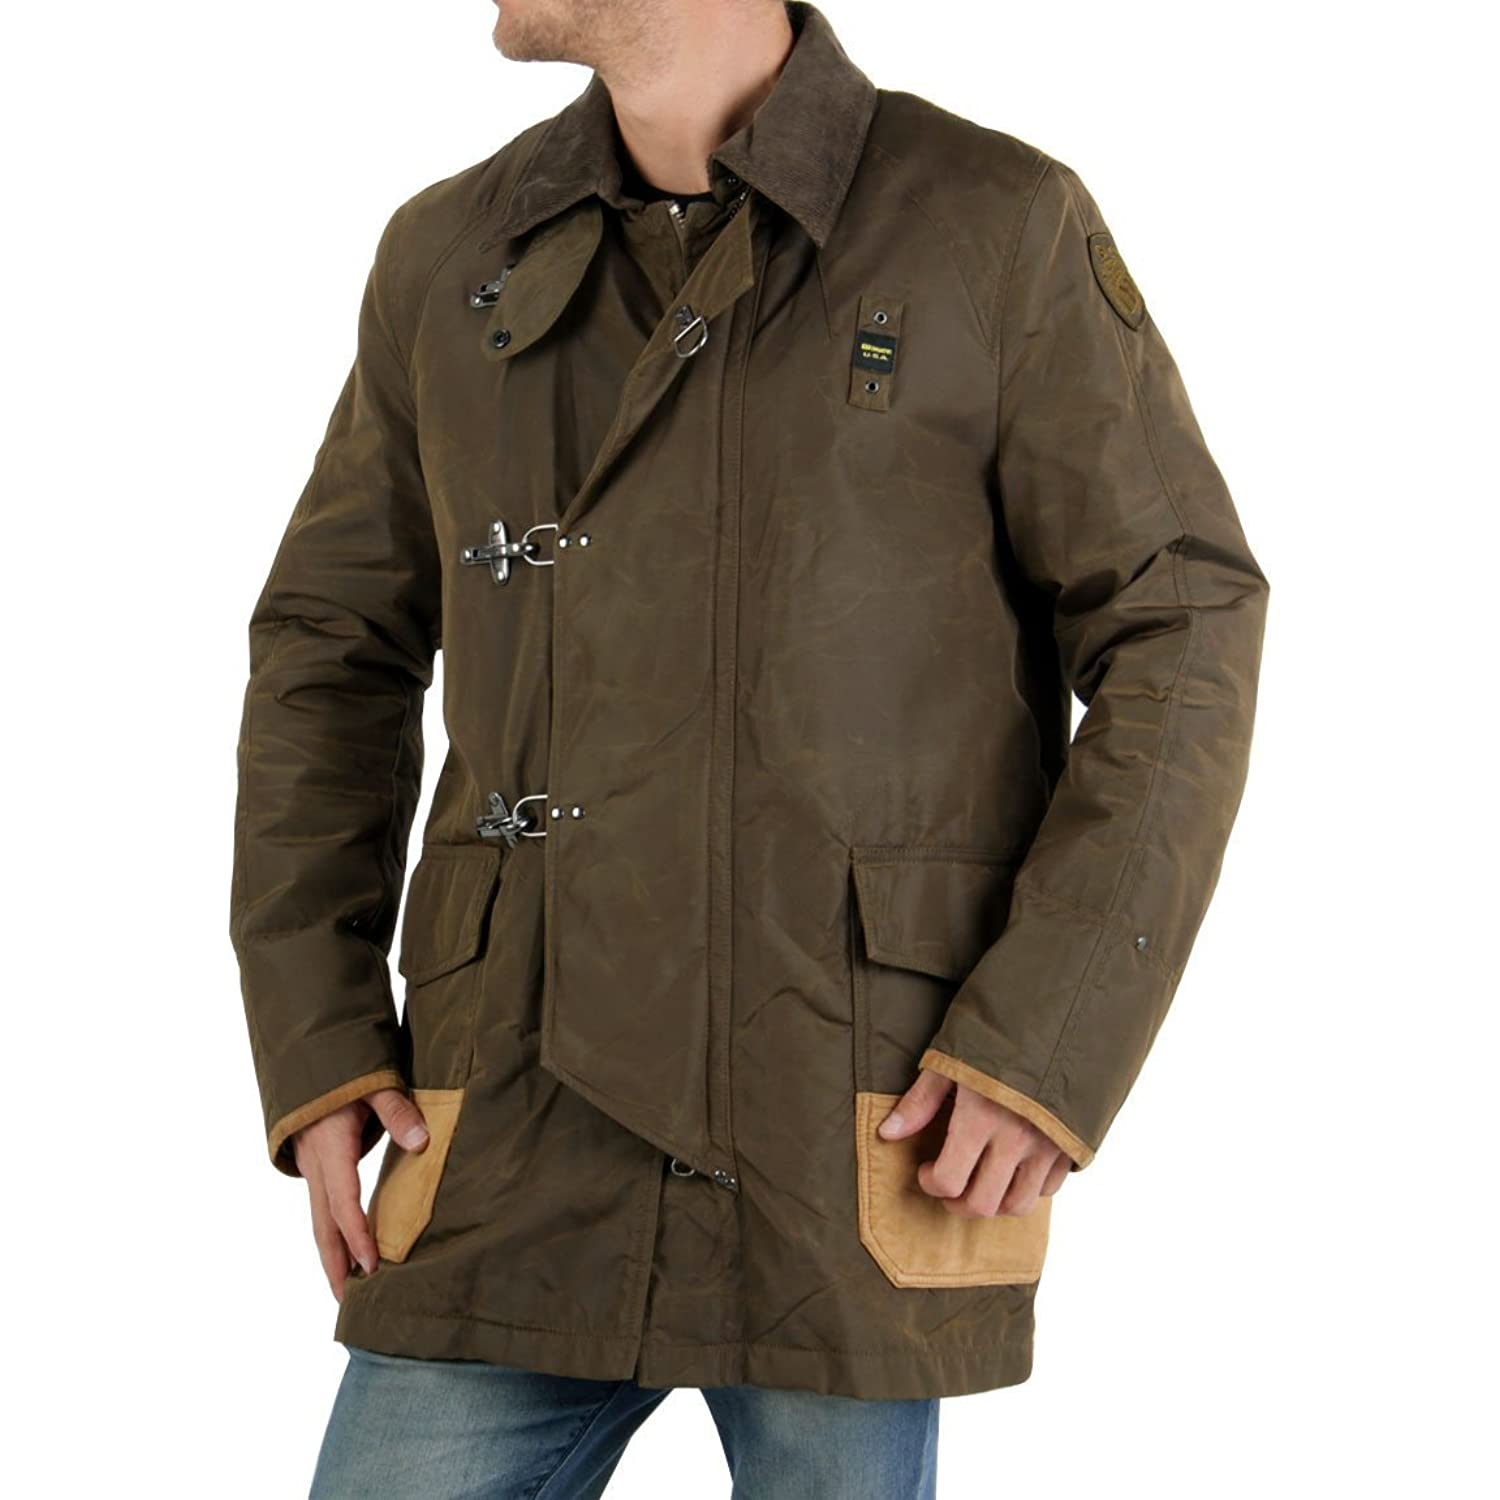 BLAUER USA Herren Jacke Boston Mass. Army BLU0383